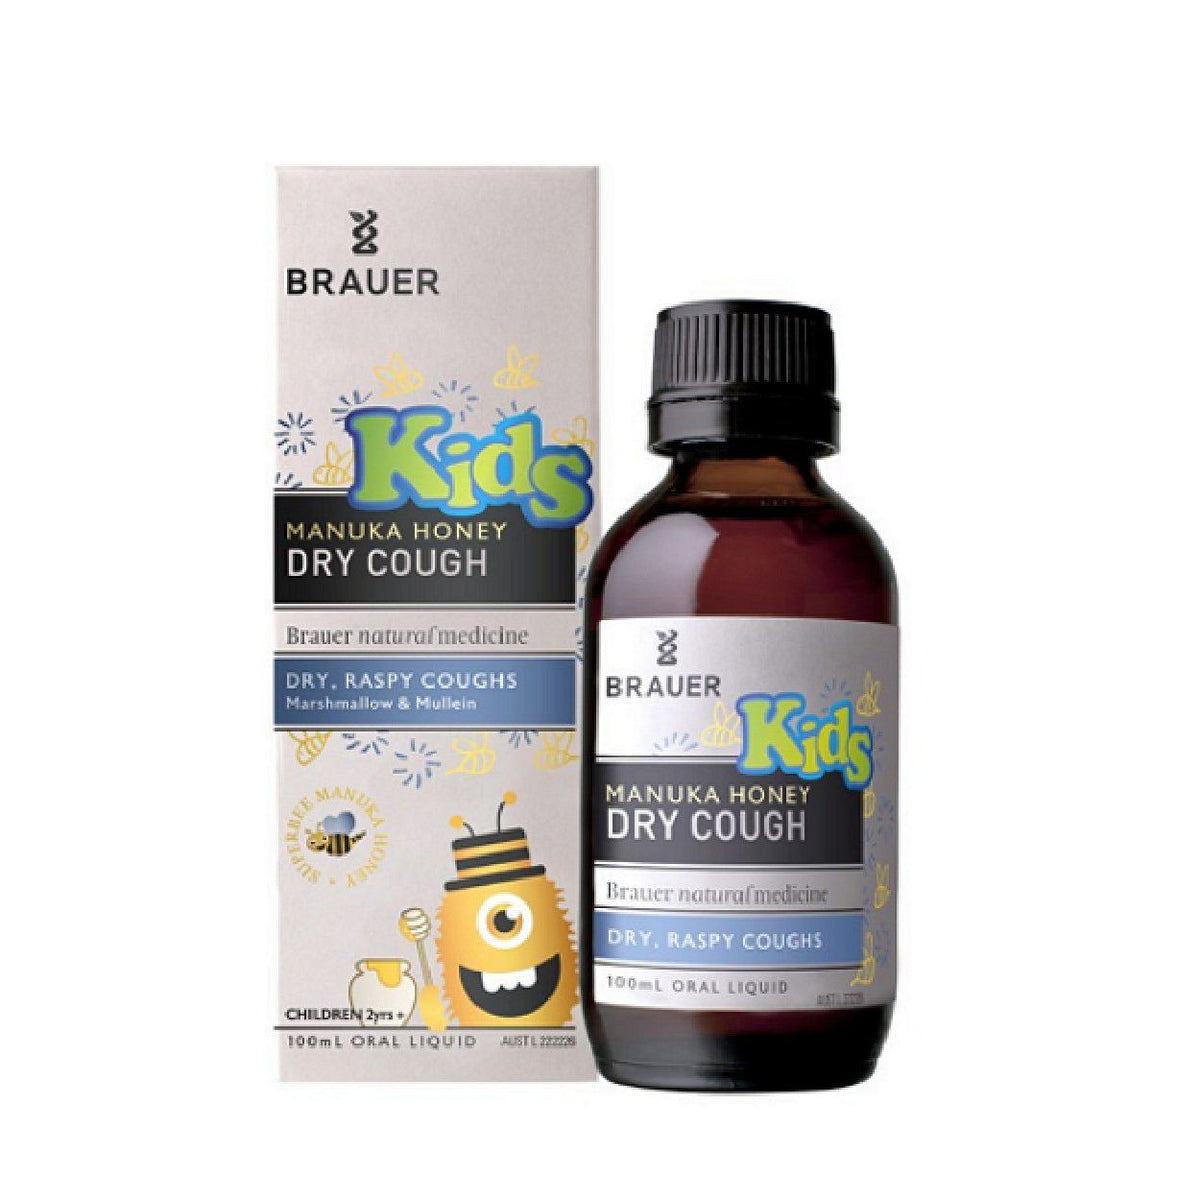 Brauer Kids Manuka Honey Dry Cough 100ML | Mr Vitamins